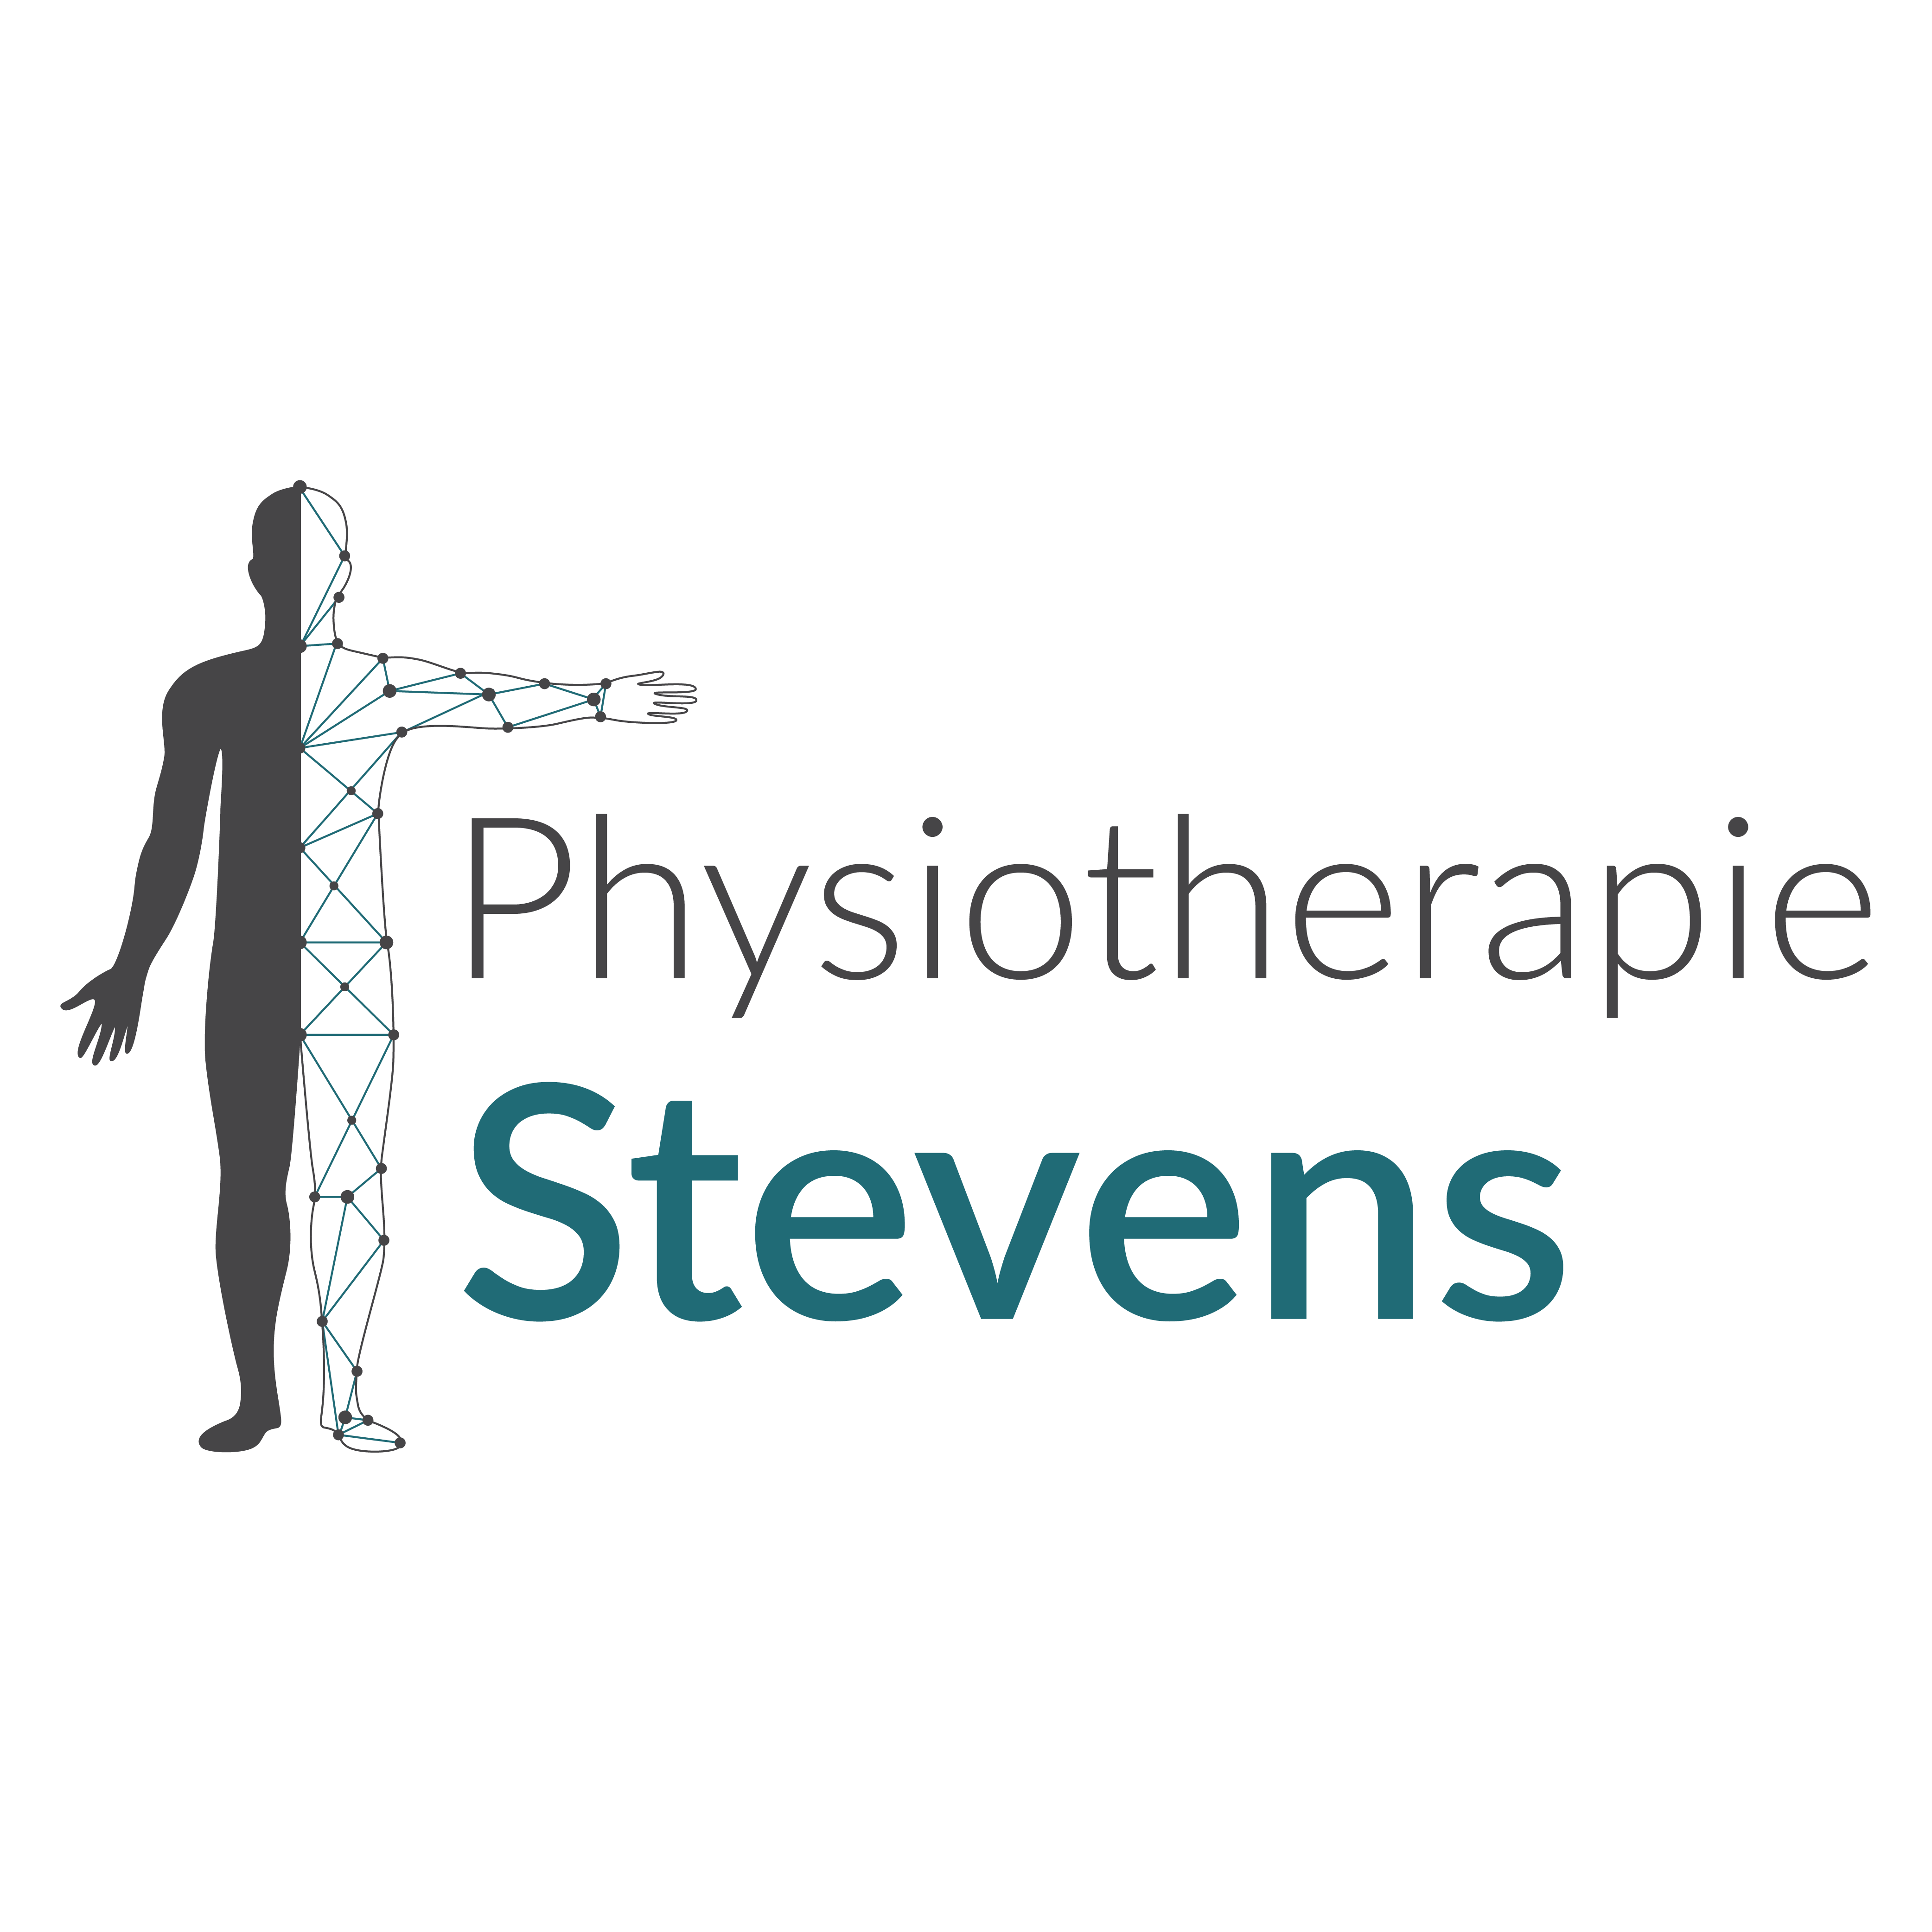 Physiotherapie Stevens